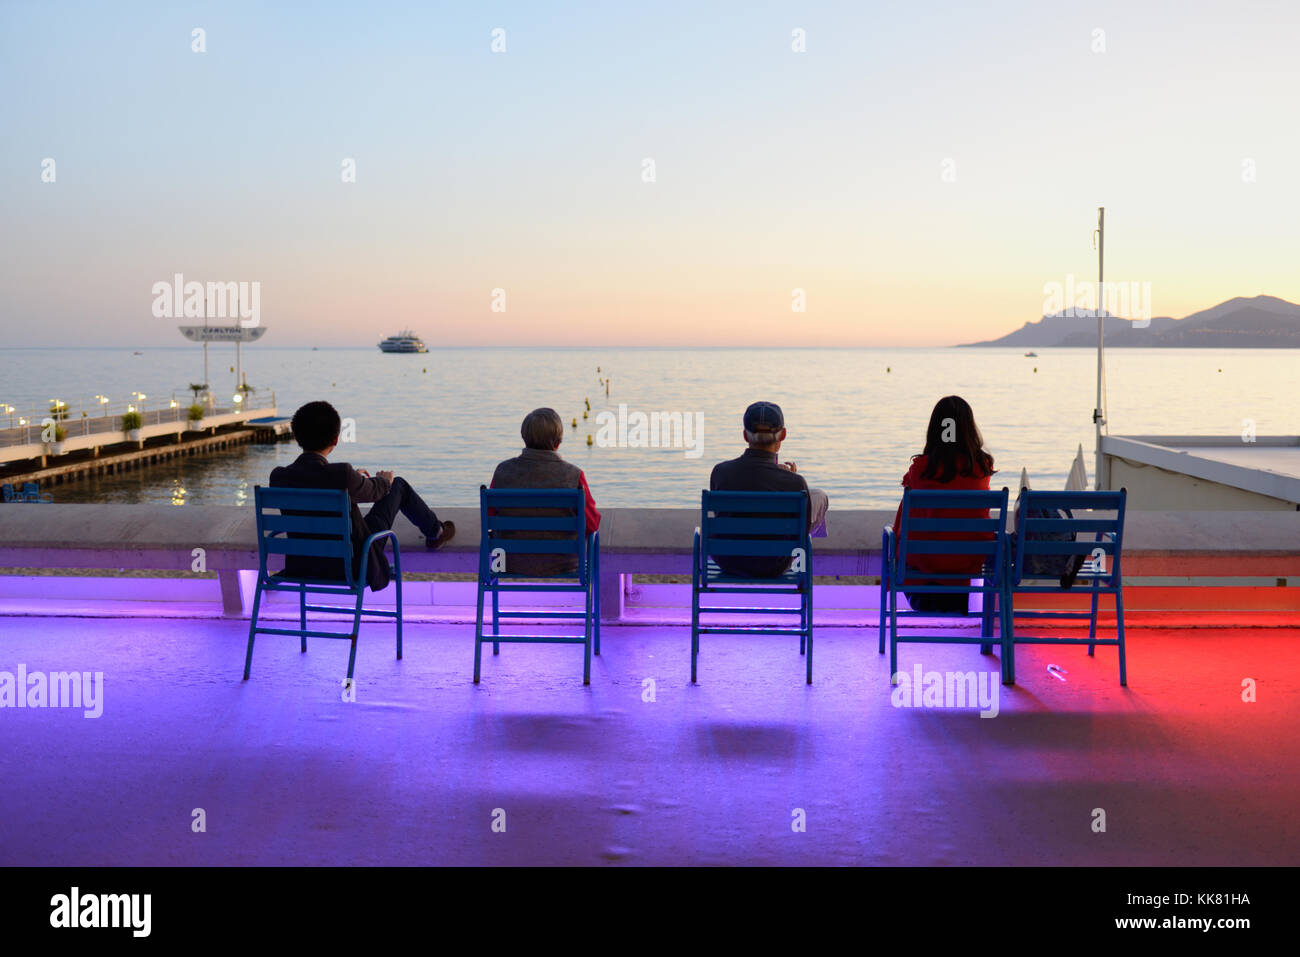 Four Tourists Enjoy the Sunset on the Boulevard de la Croisette, Cannes, at Dusk, with Dramatic Colour Street Lighting, French Riviera, france Stock Photo